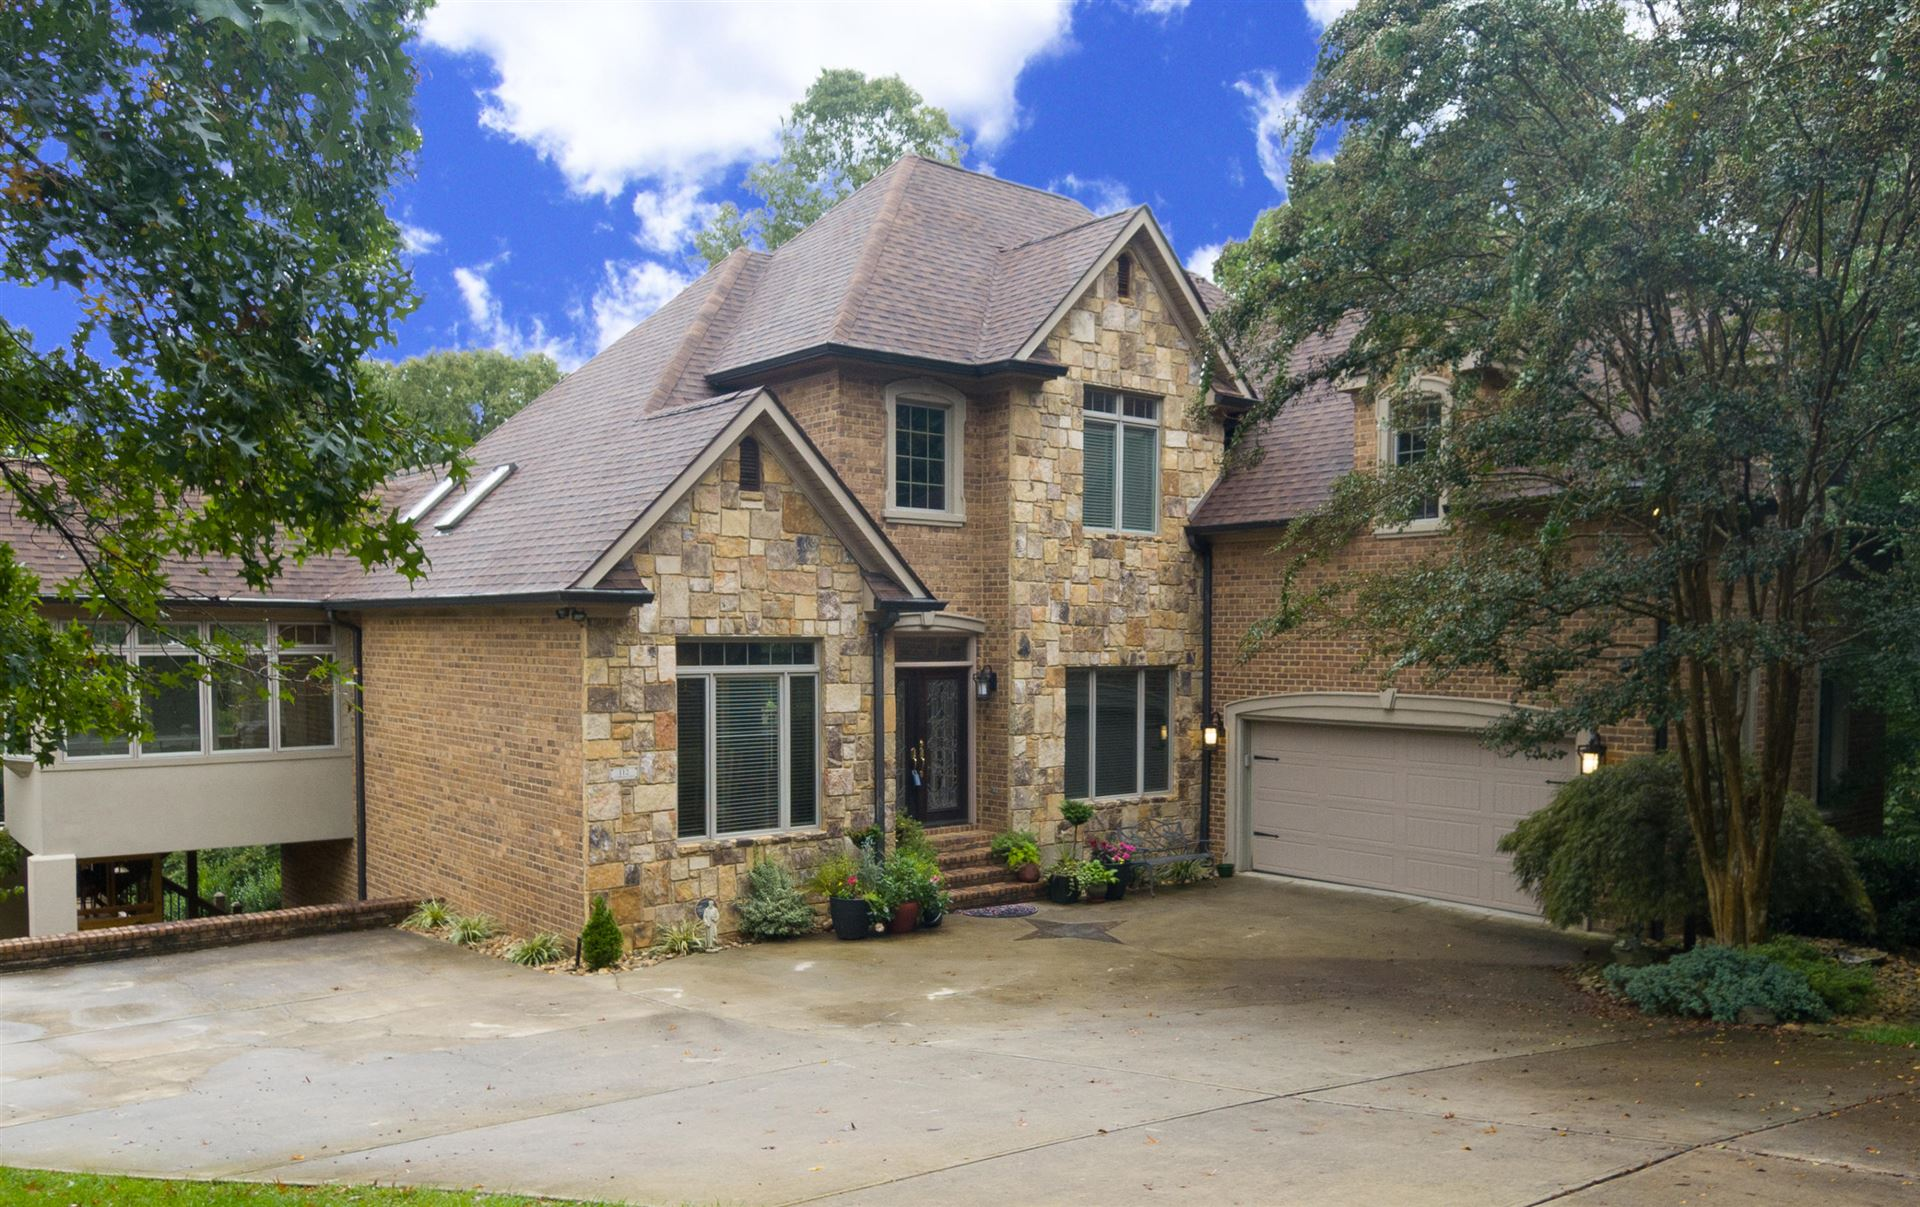 Photo of 112 Creekwood Court, Lenoir City, TN 37772 (MLS # 1130597)